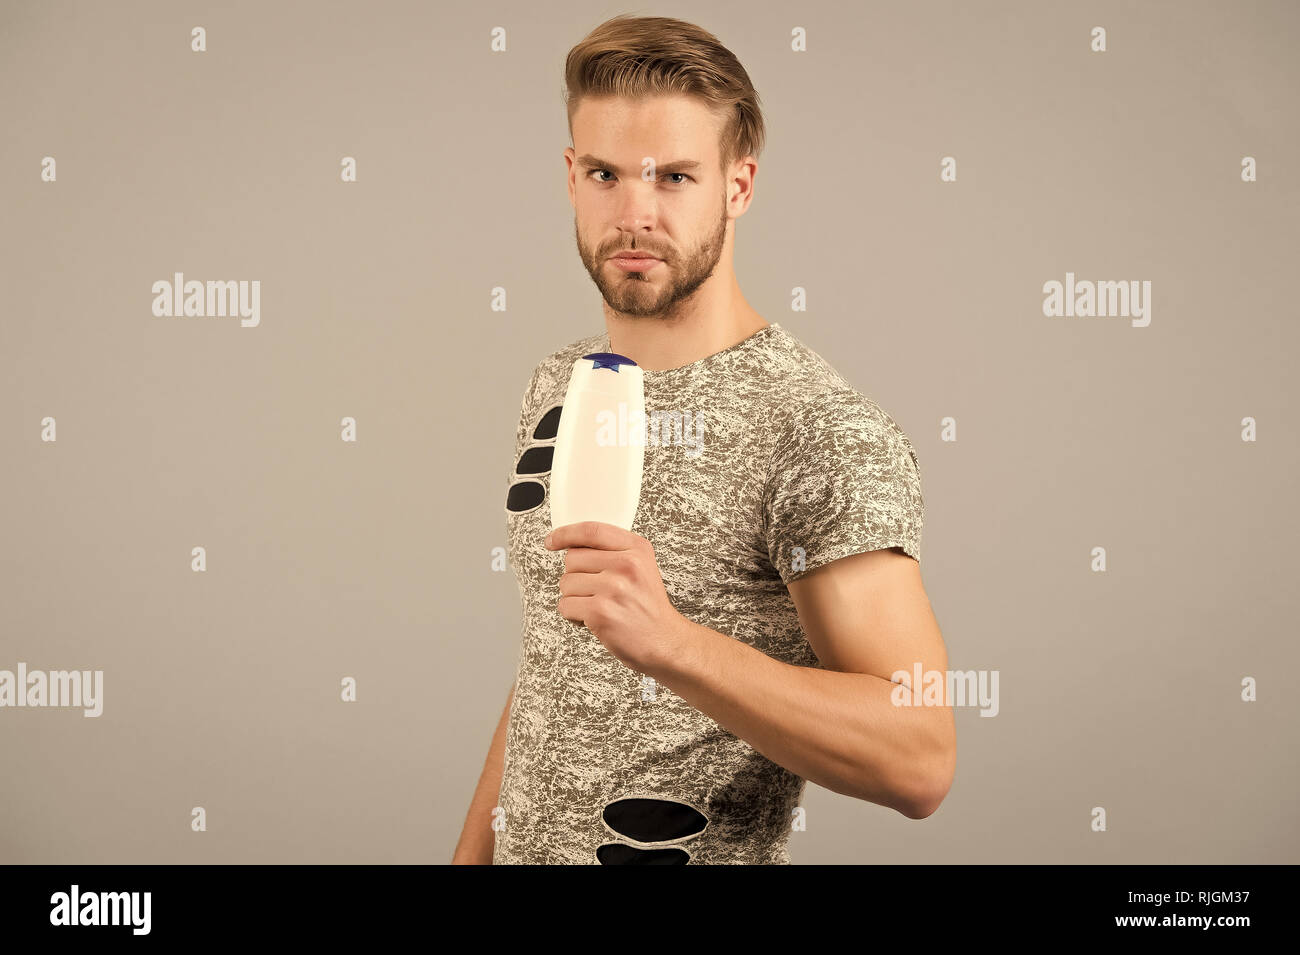 Man strict face holds shampoo bottle, grey background. Man enjoy freshness after washing hair with shampoo. Guy with hairstyle holds bottle shampoo, copy space. Hair care and beauty supplies concept. Stock Photo